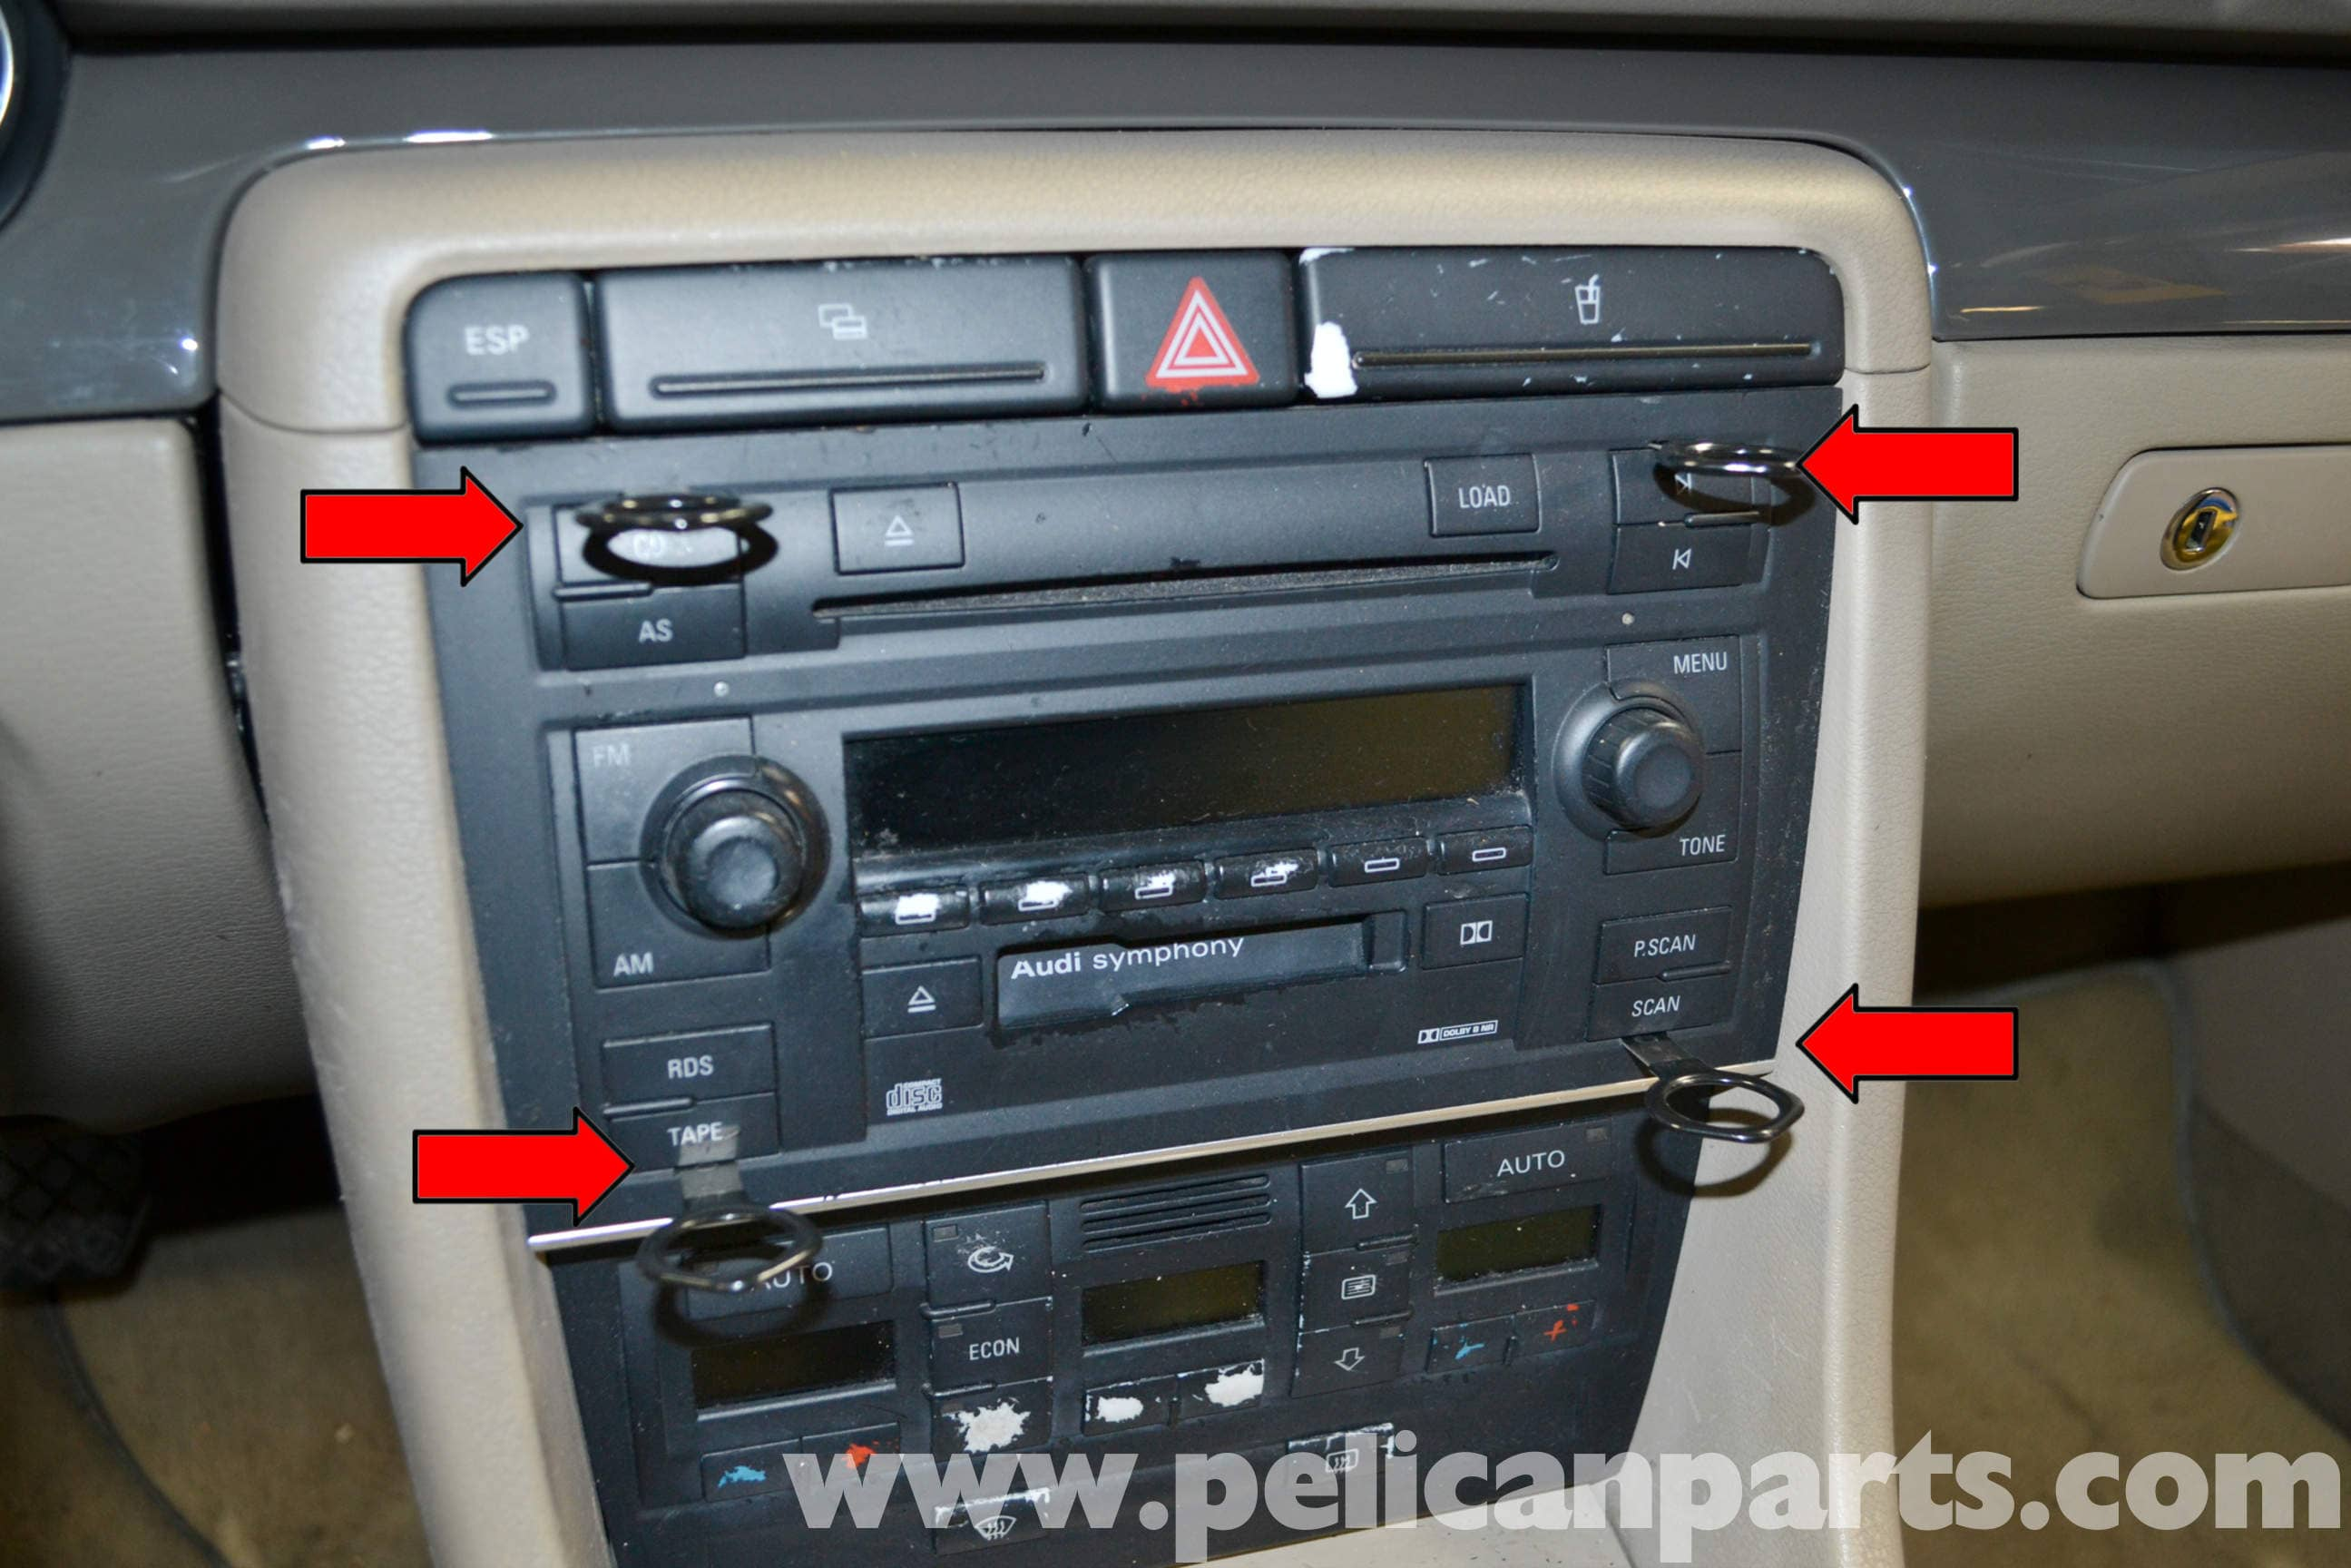 Car stereo replacement buttons